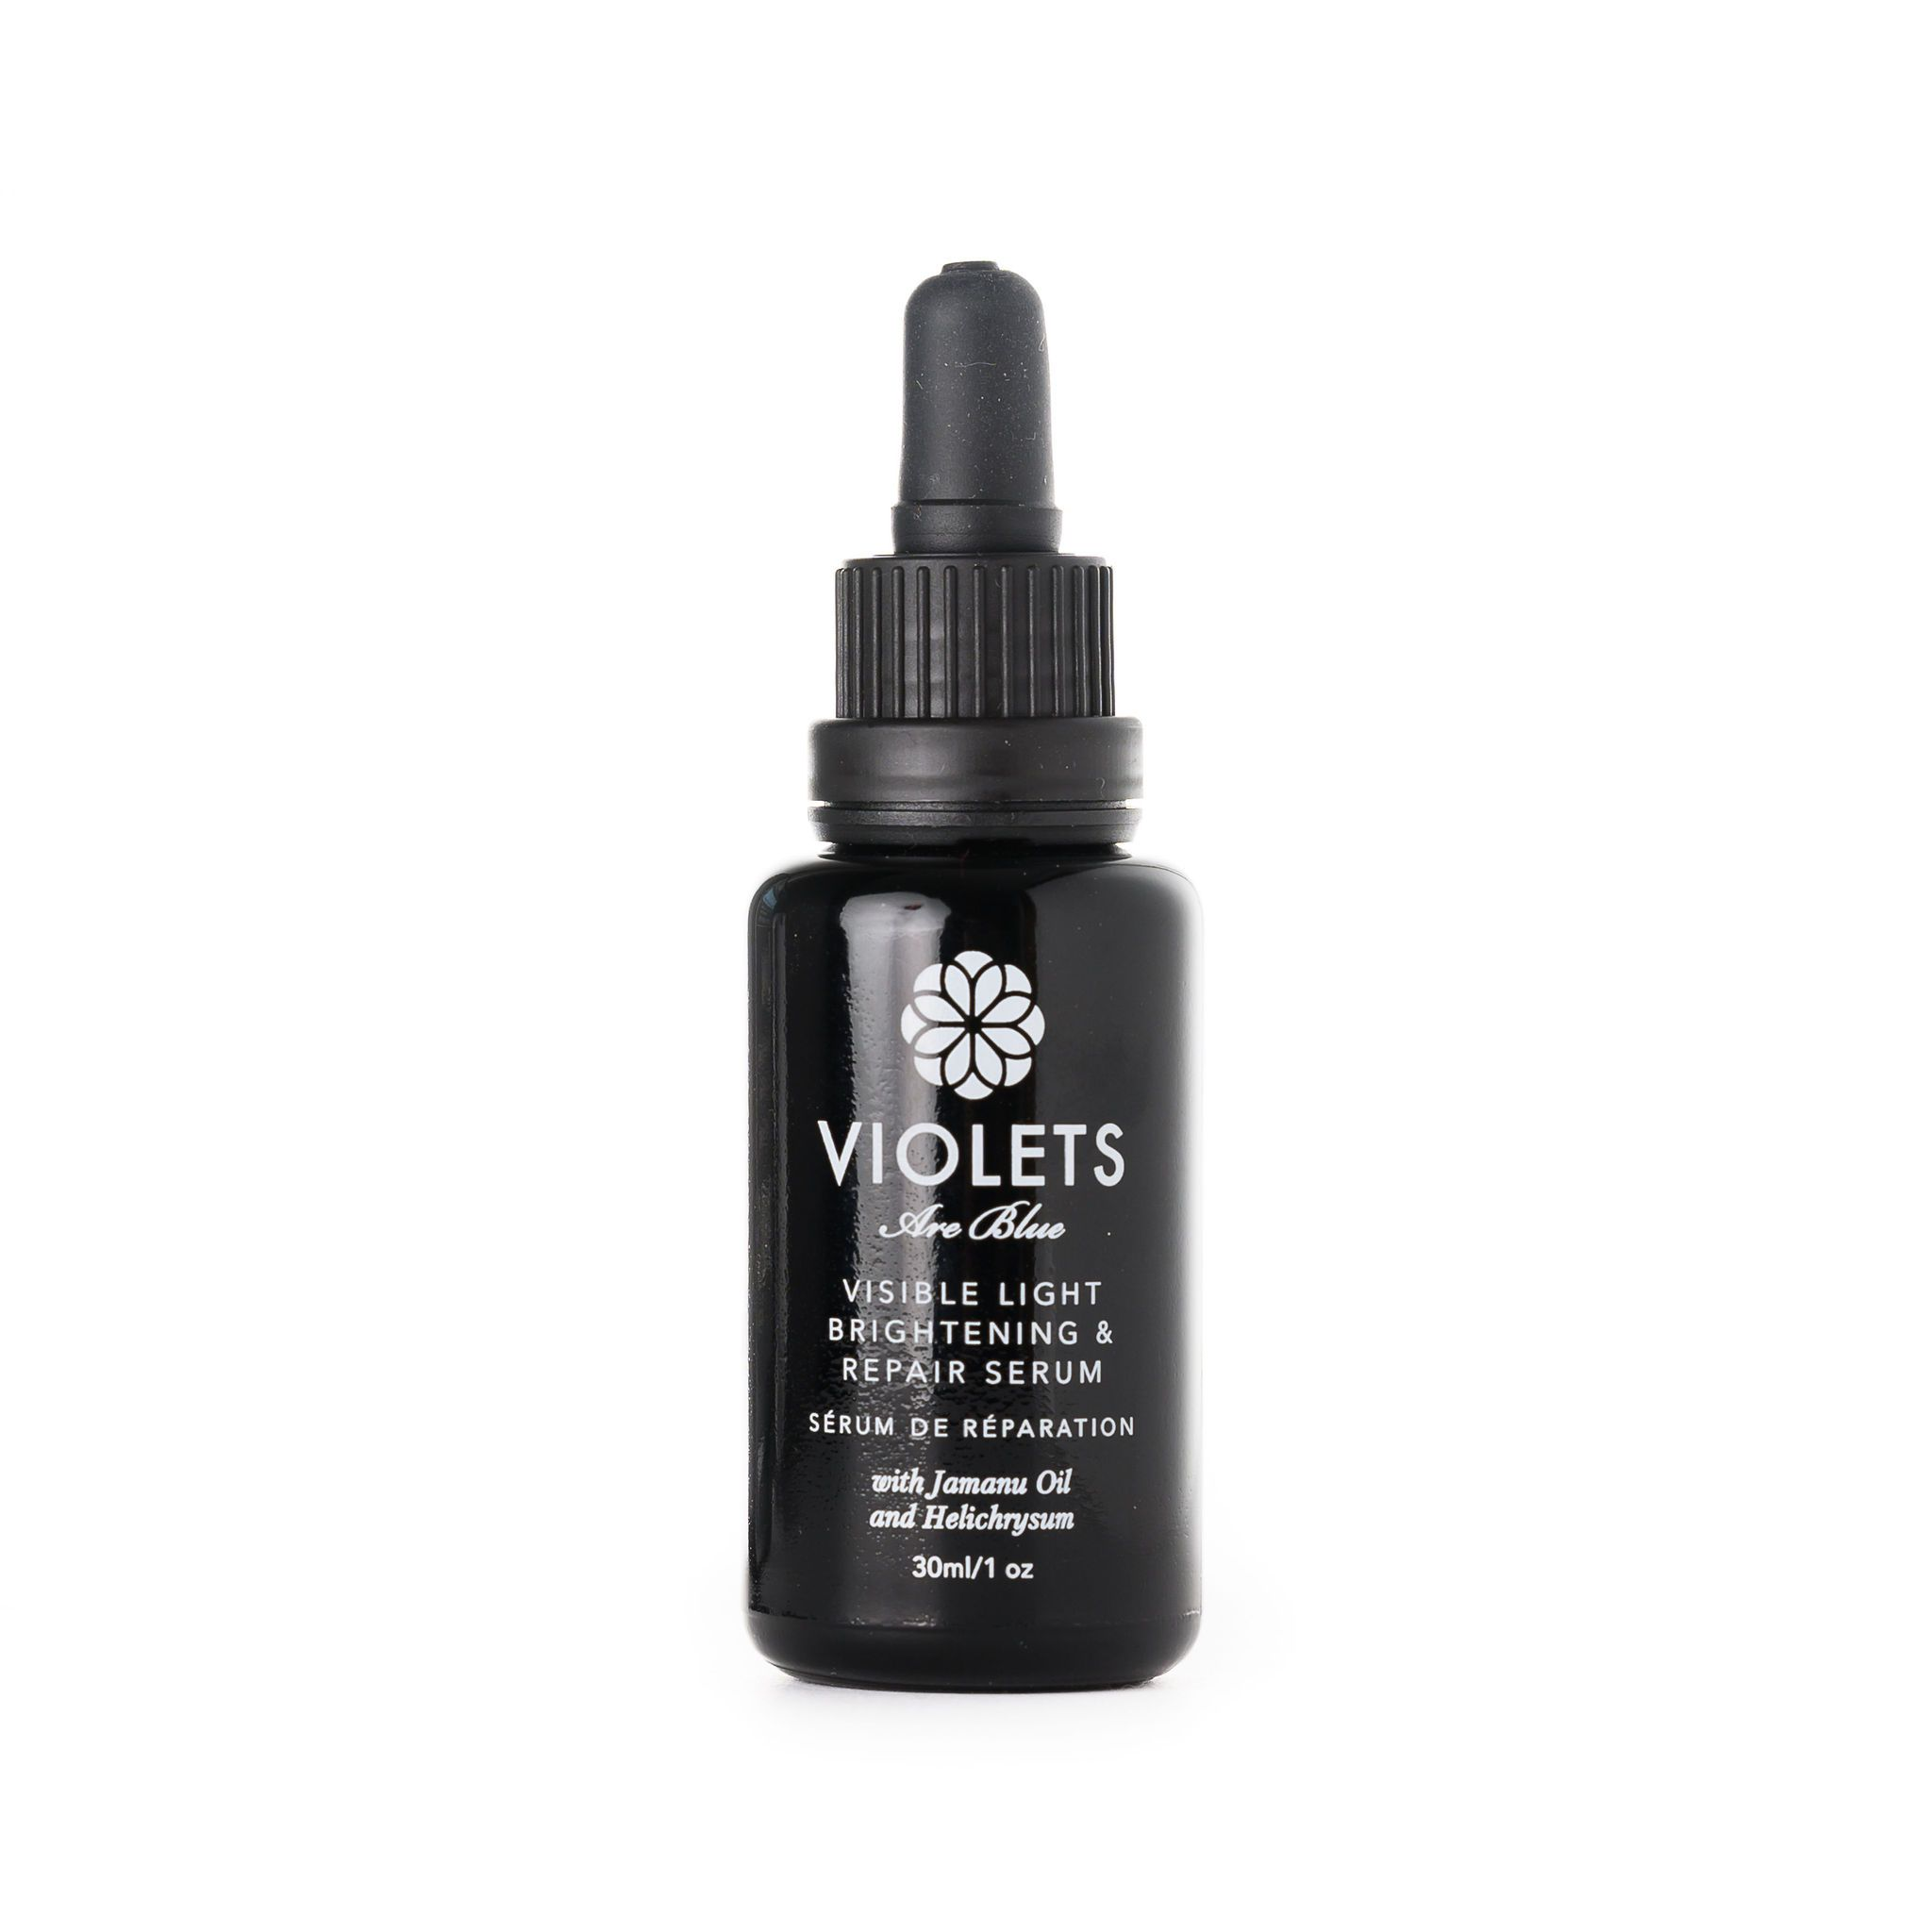 Visible Light Brightening and Repair Serum with Tamanu and Helichrysum